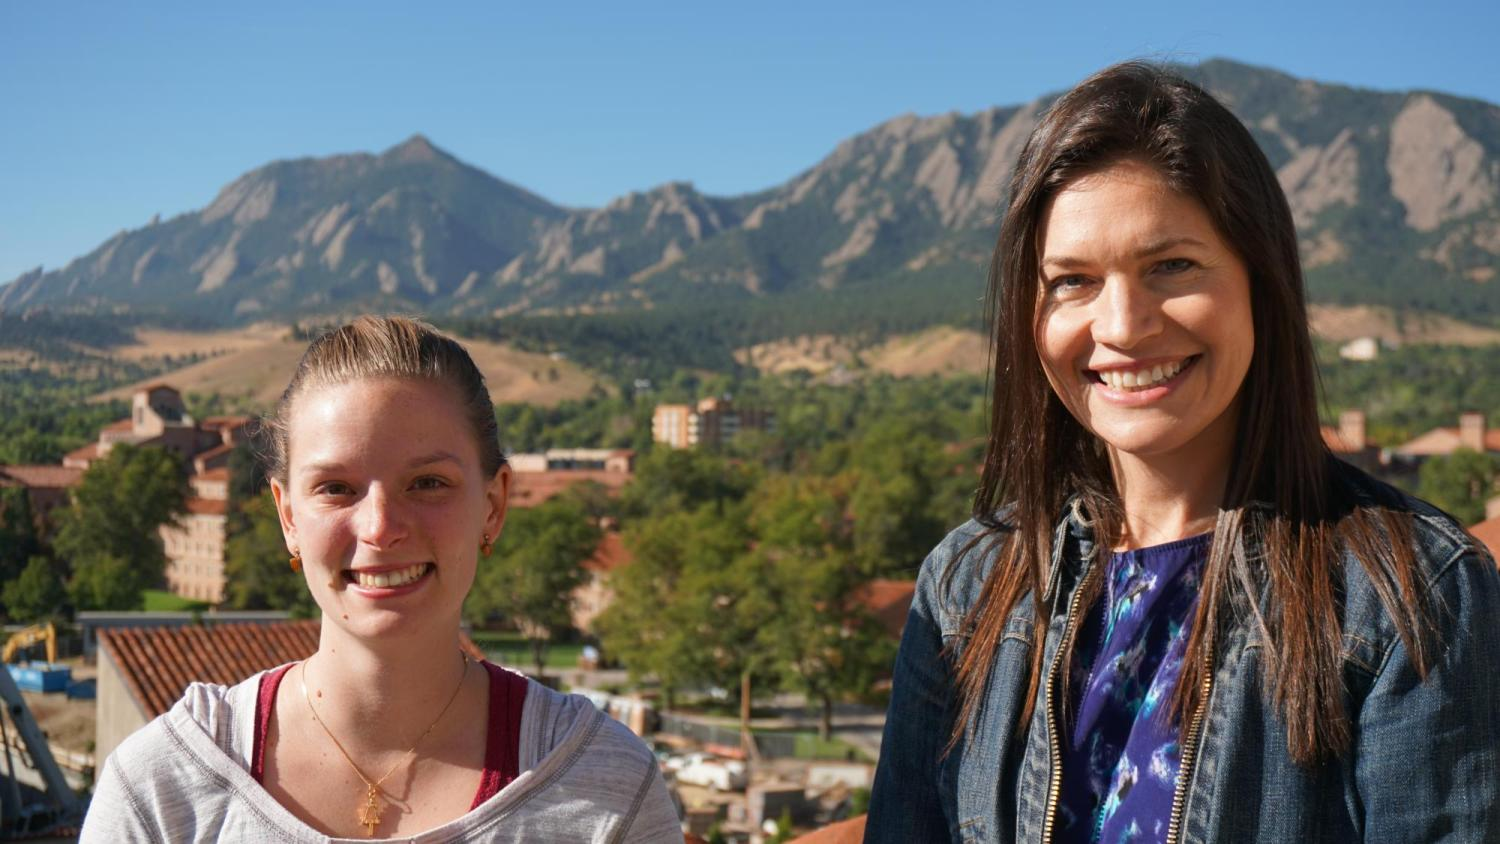 Stacy Hayes and Jennifer Perot with flatirons in background